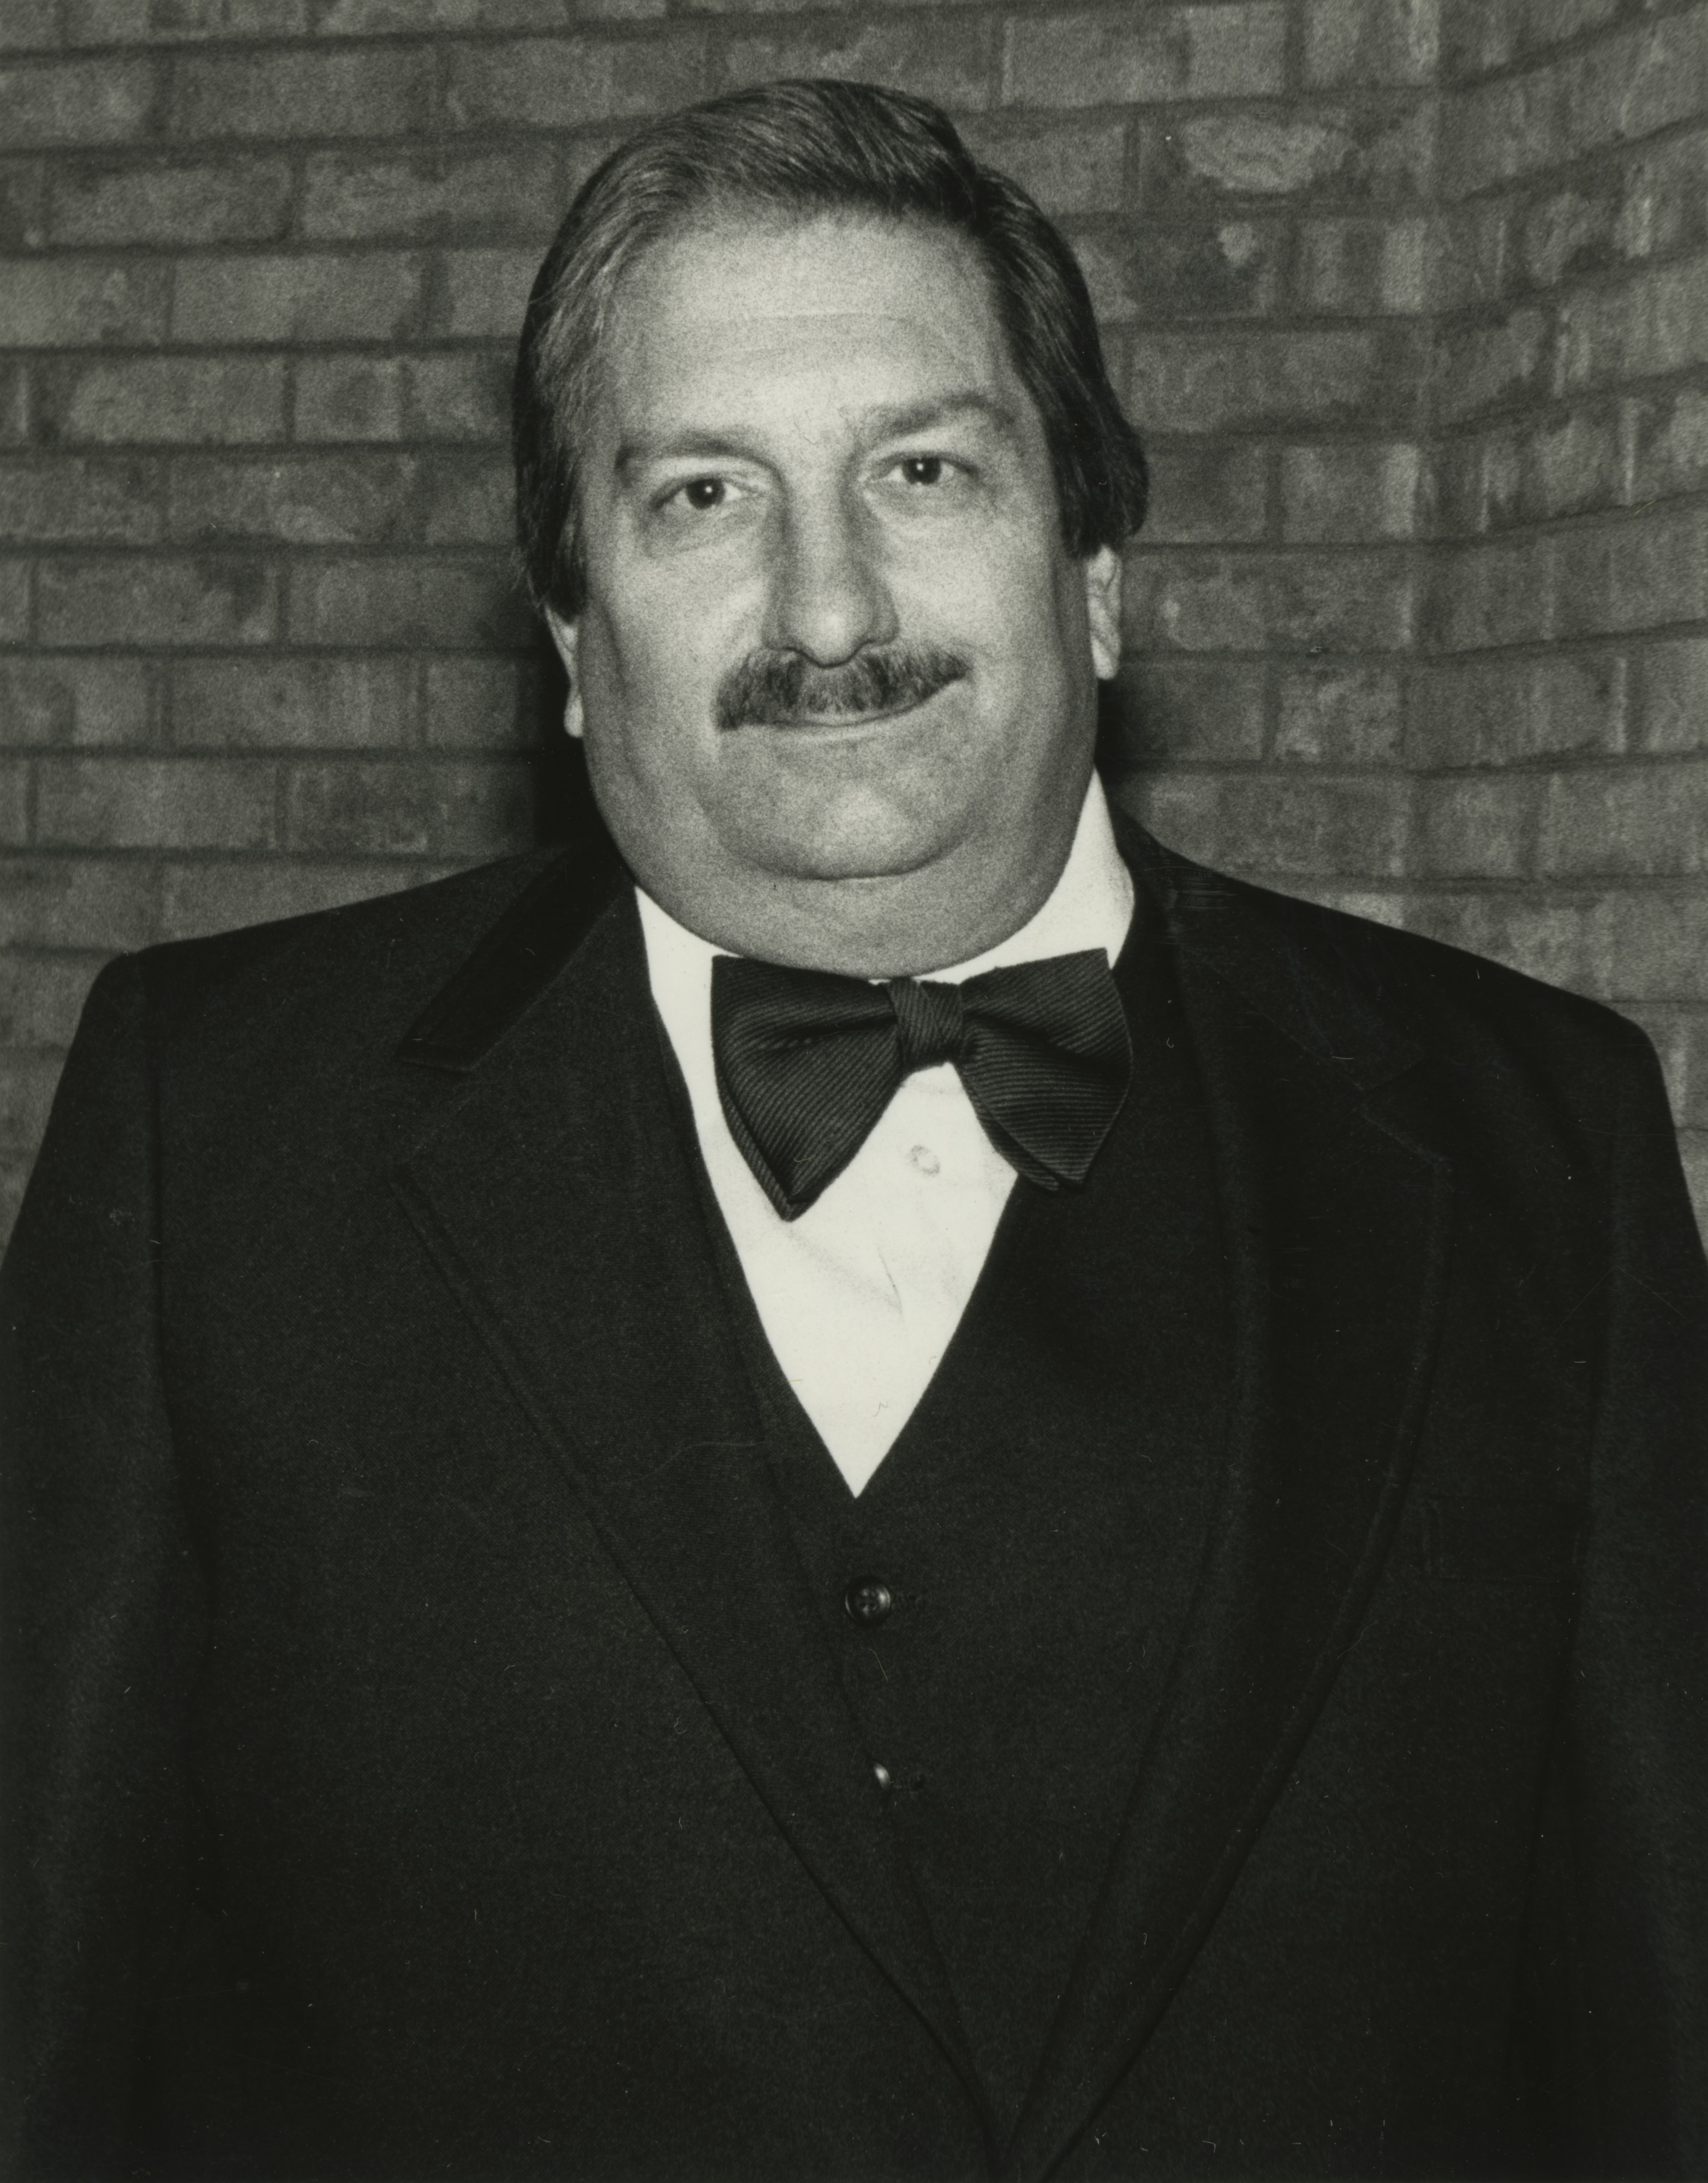 Portrait of Russell F. Smith, Recipient of Mann Award, August 1984 image